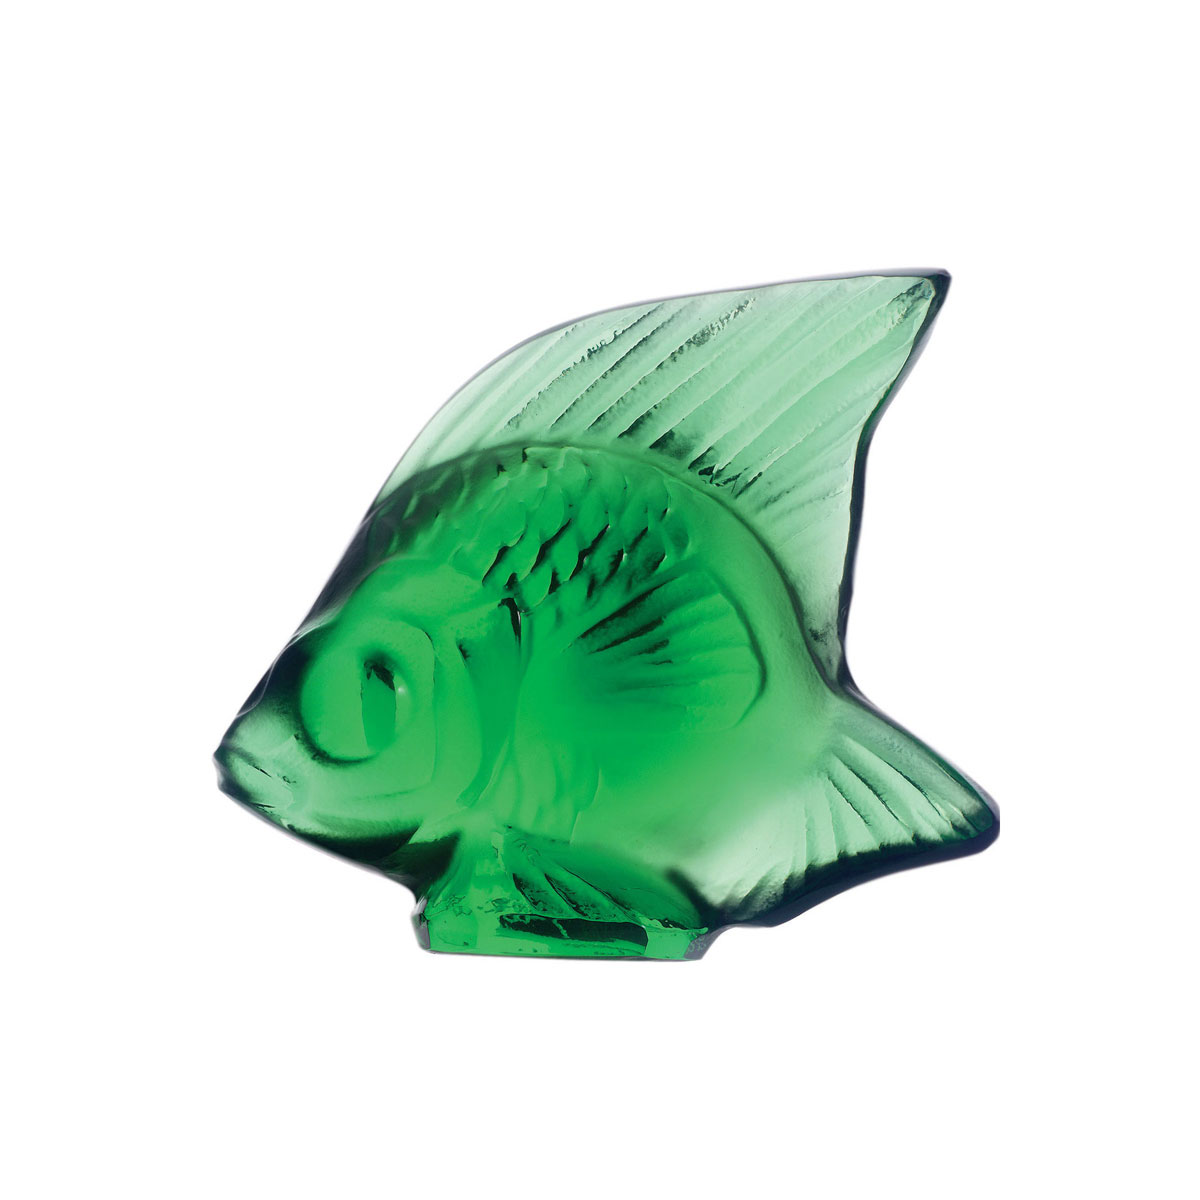 Lalique Green Meadow Fish Sculpture